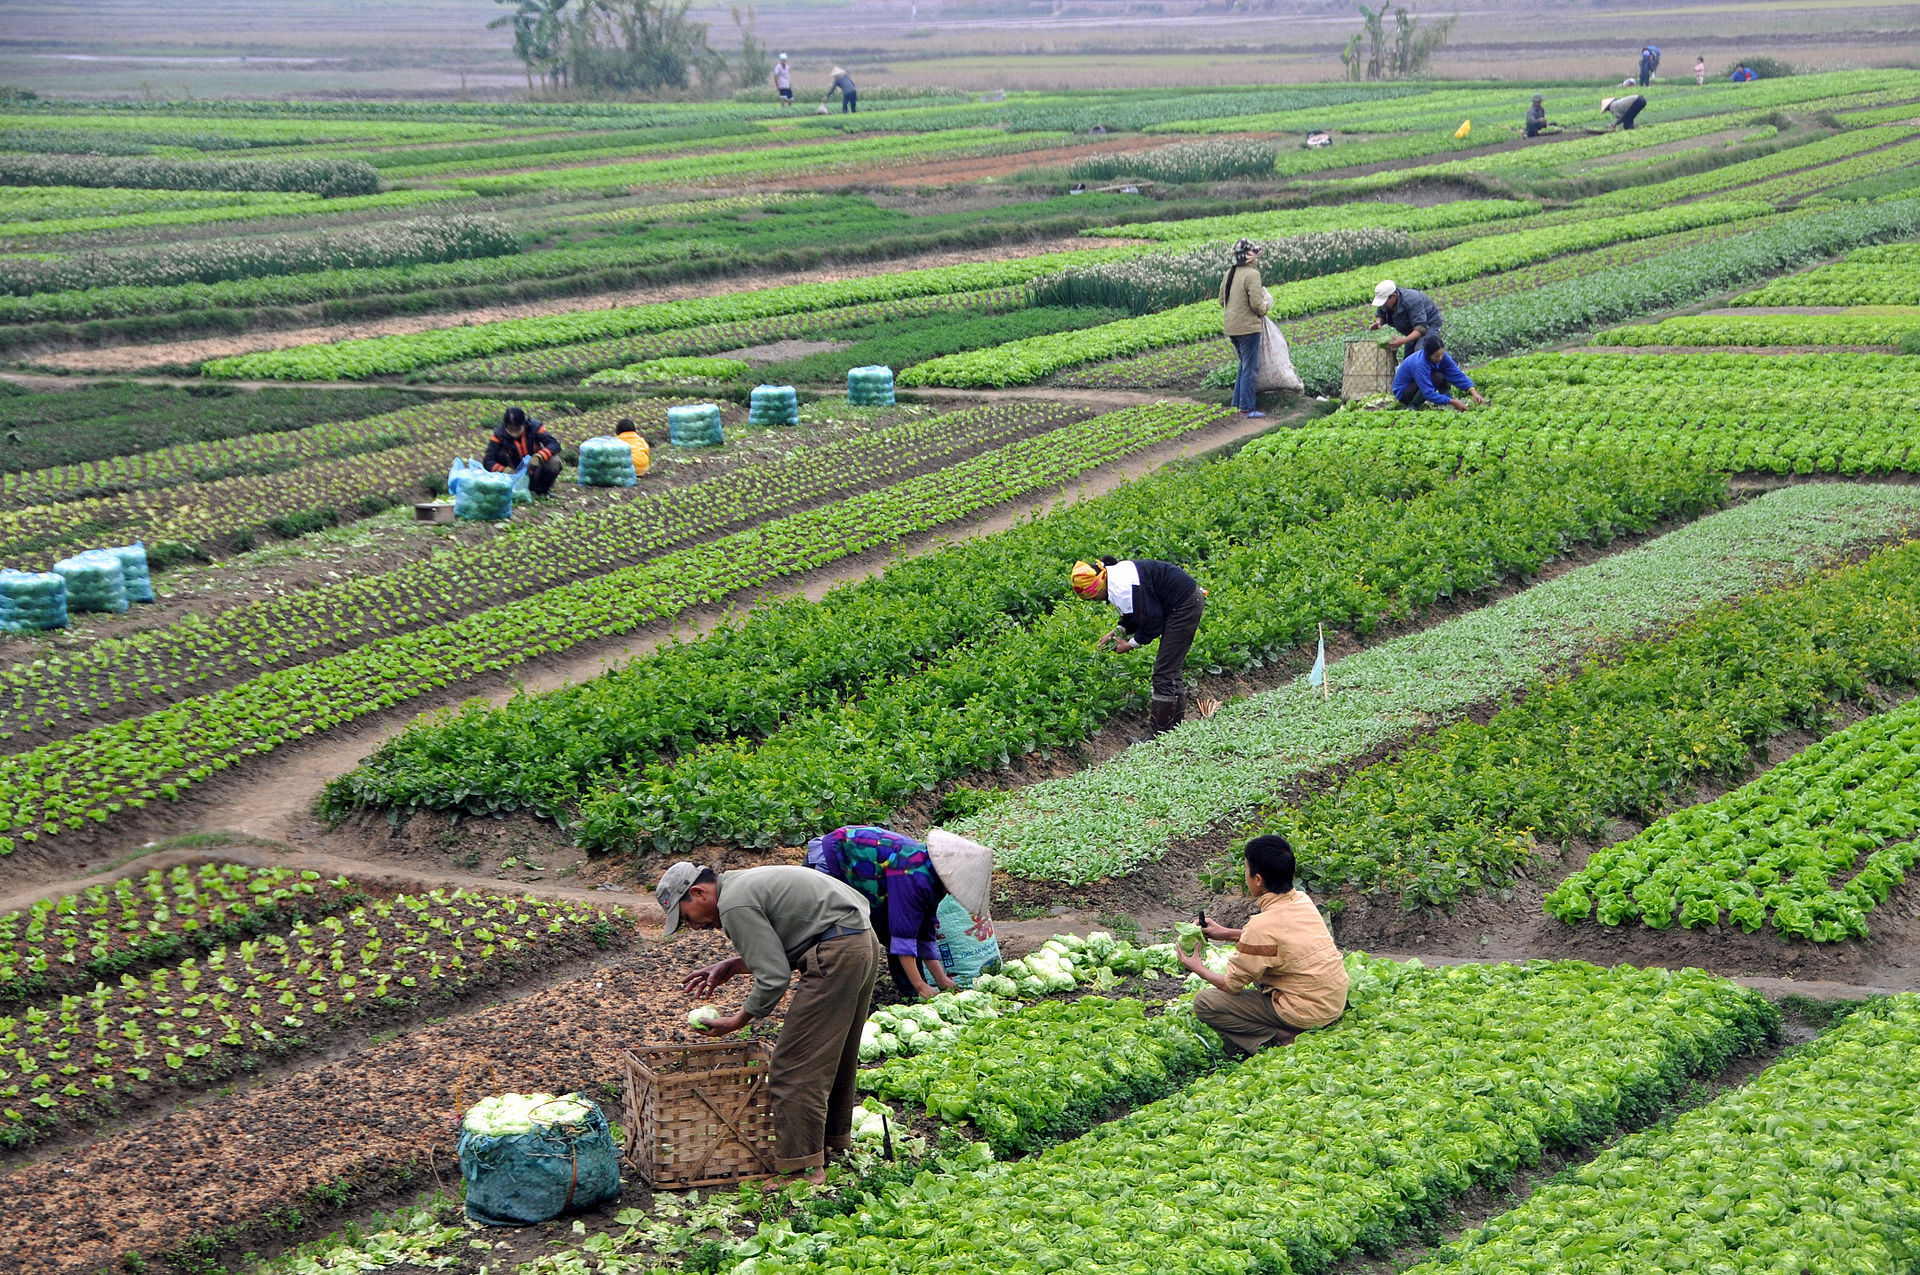 Agriculture in Vietnam with farmers | commons.wikimedia.org / Dennis Jarvis